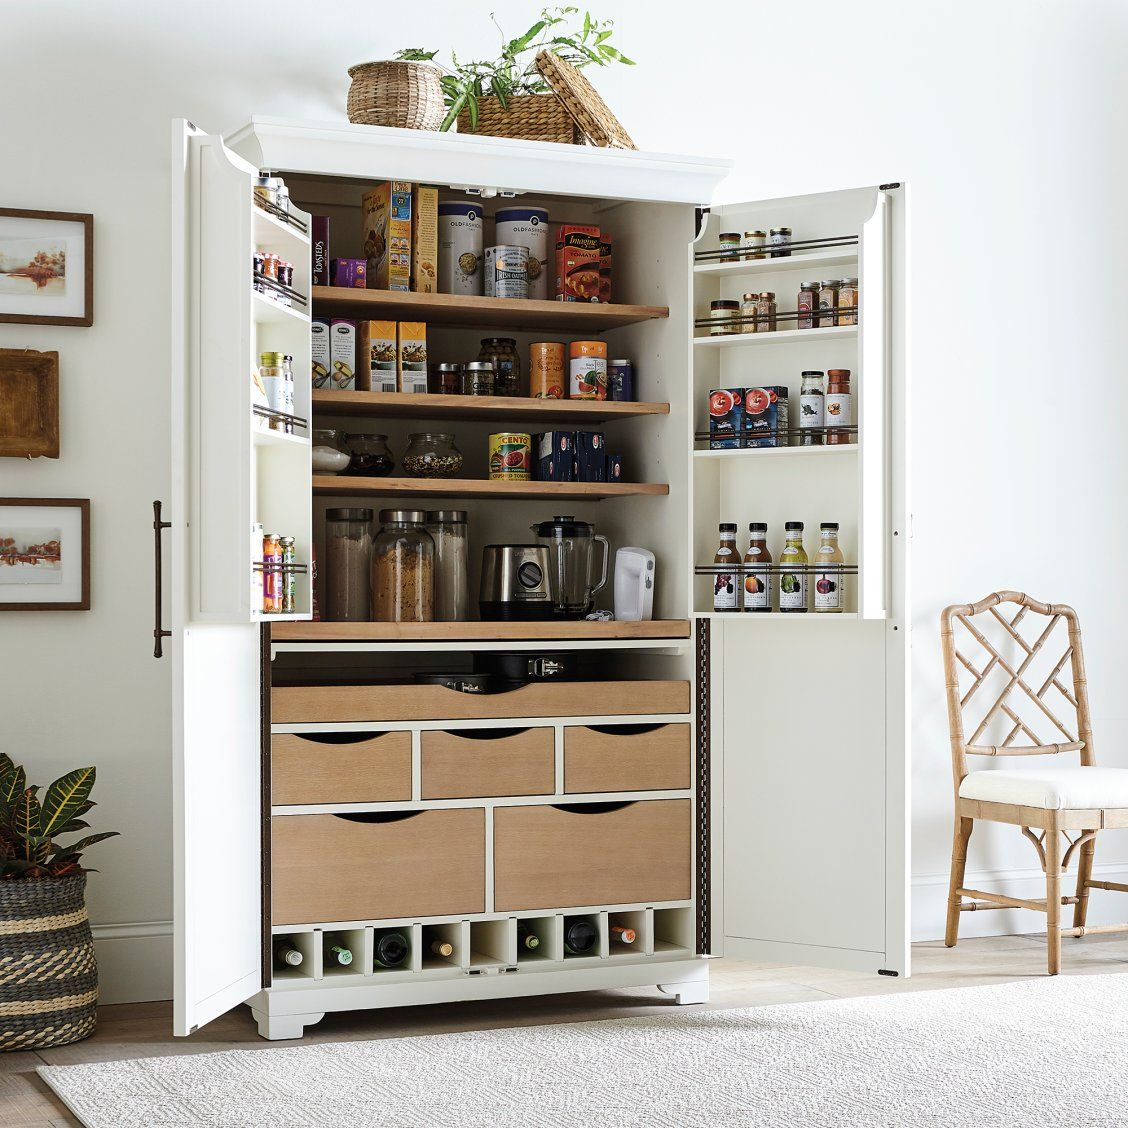 Fairmont Pantry Cabinet In 2020 Pantry Cabinet Pantry Design Home